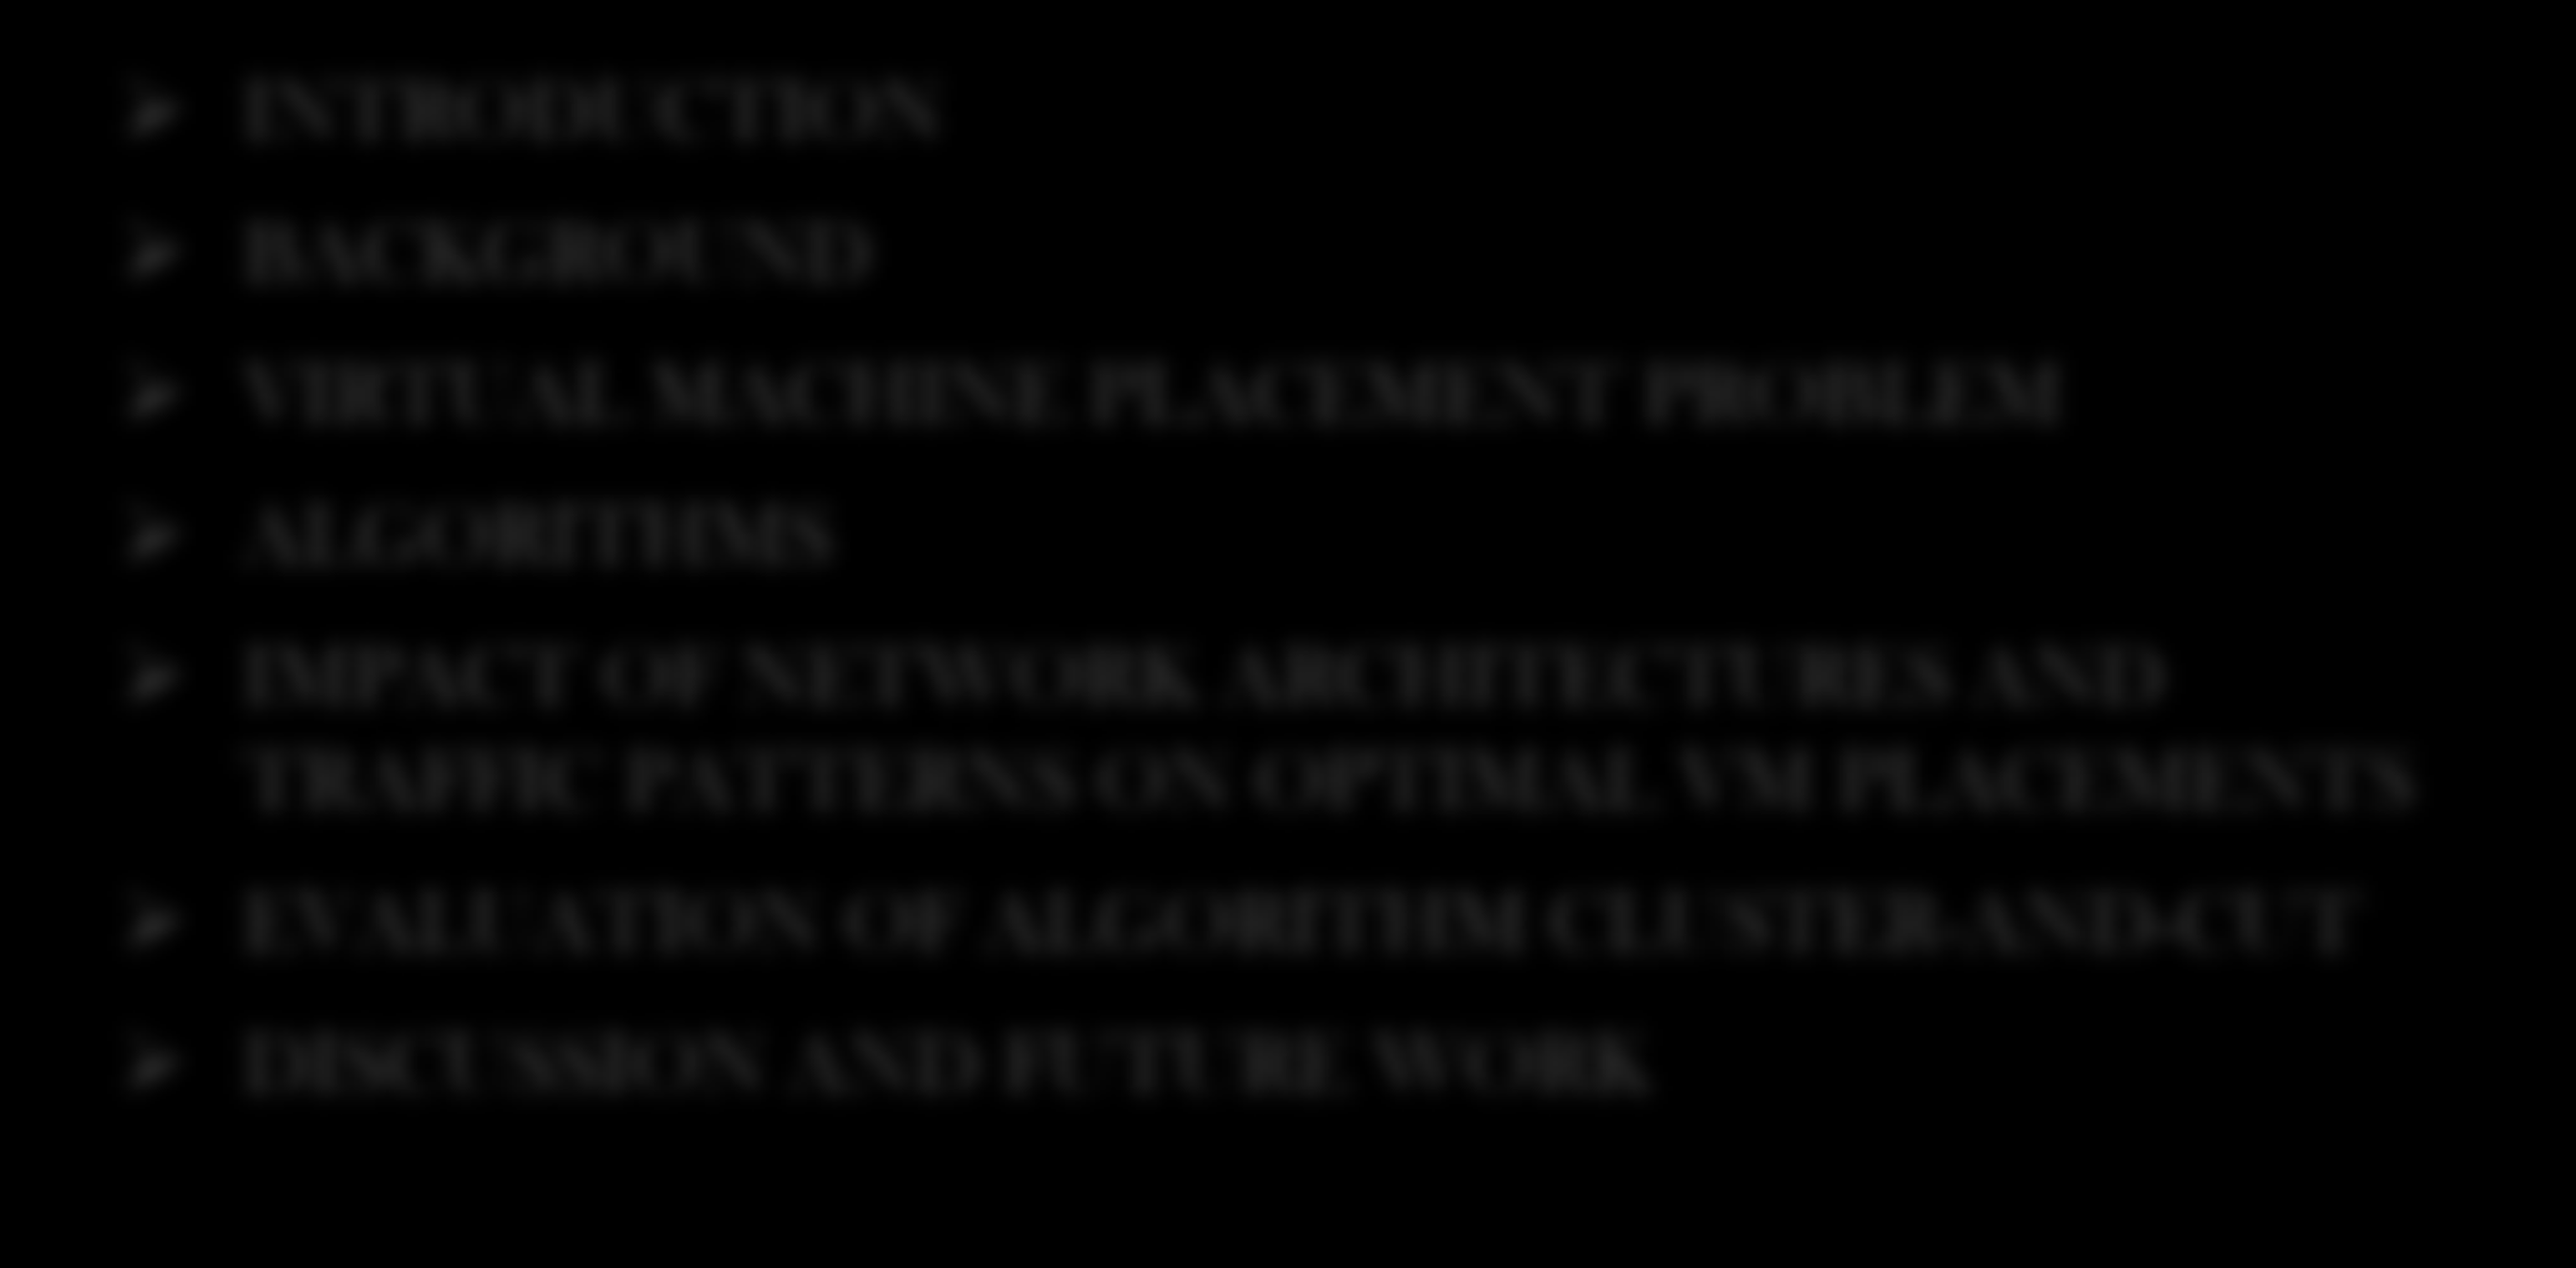 Overview: INTRODUCTION BACKGROUND VIRTUAL MACHINE PLACEMENT PROBLEM ALGORITHMS IMPACT OF NETWORK ARCHITECTURES